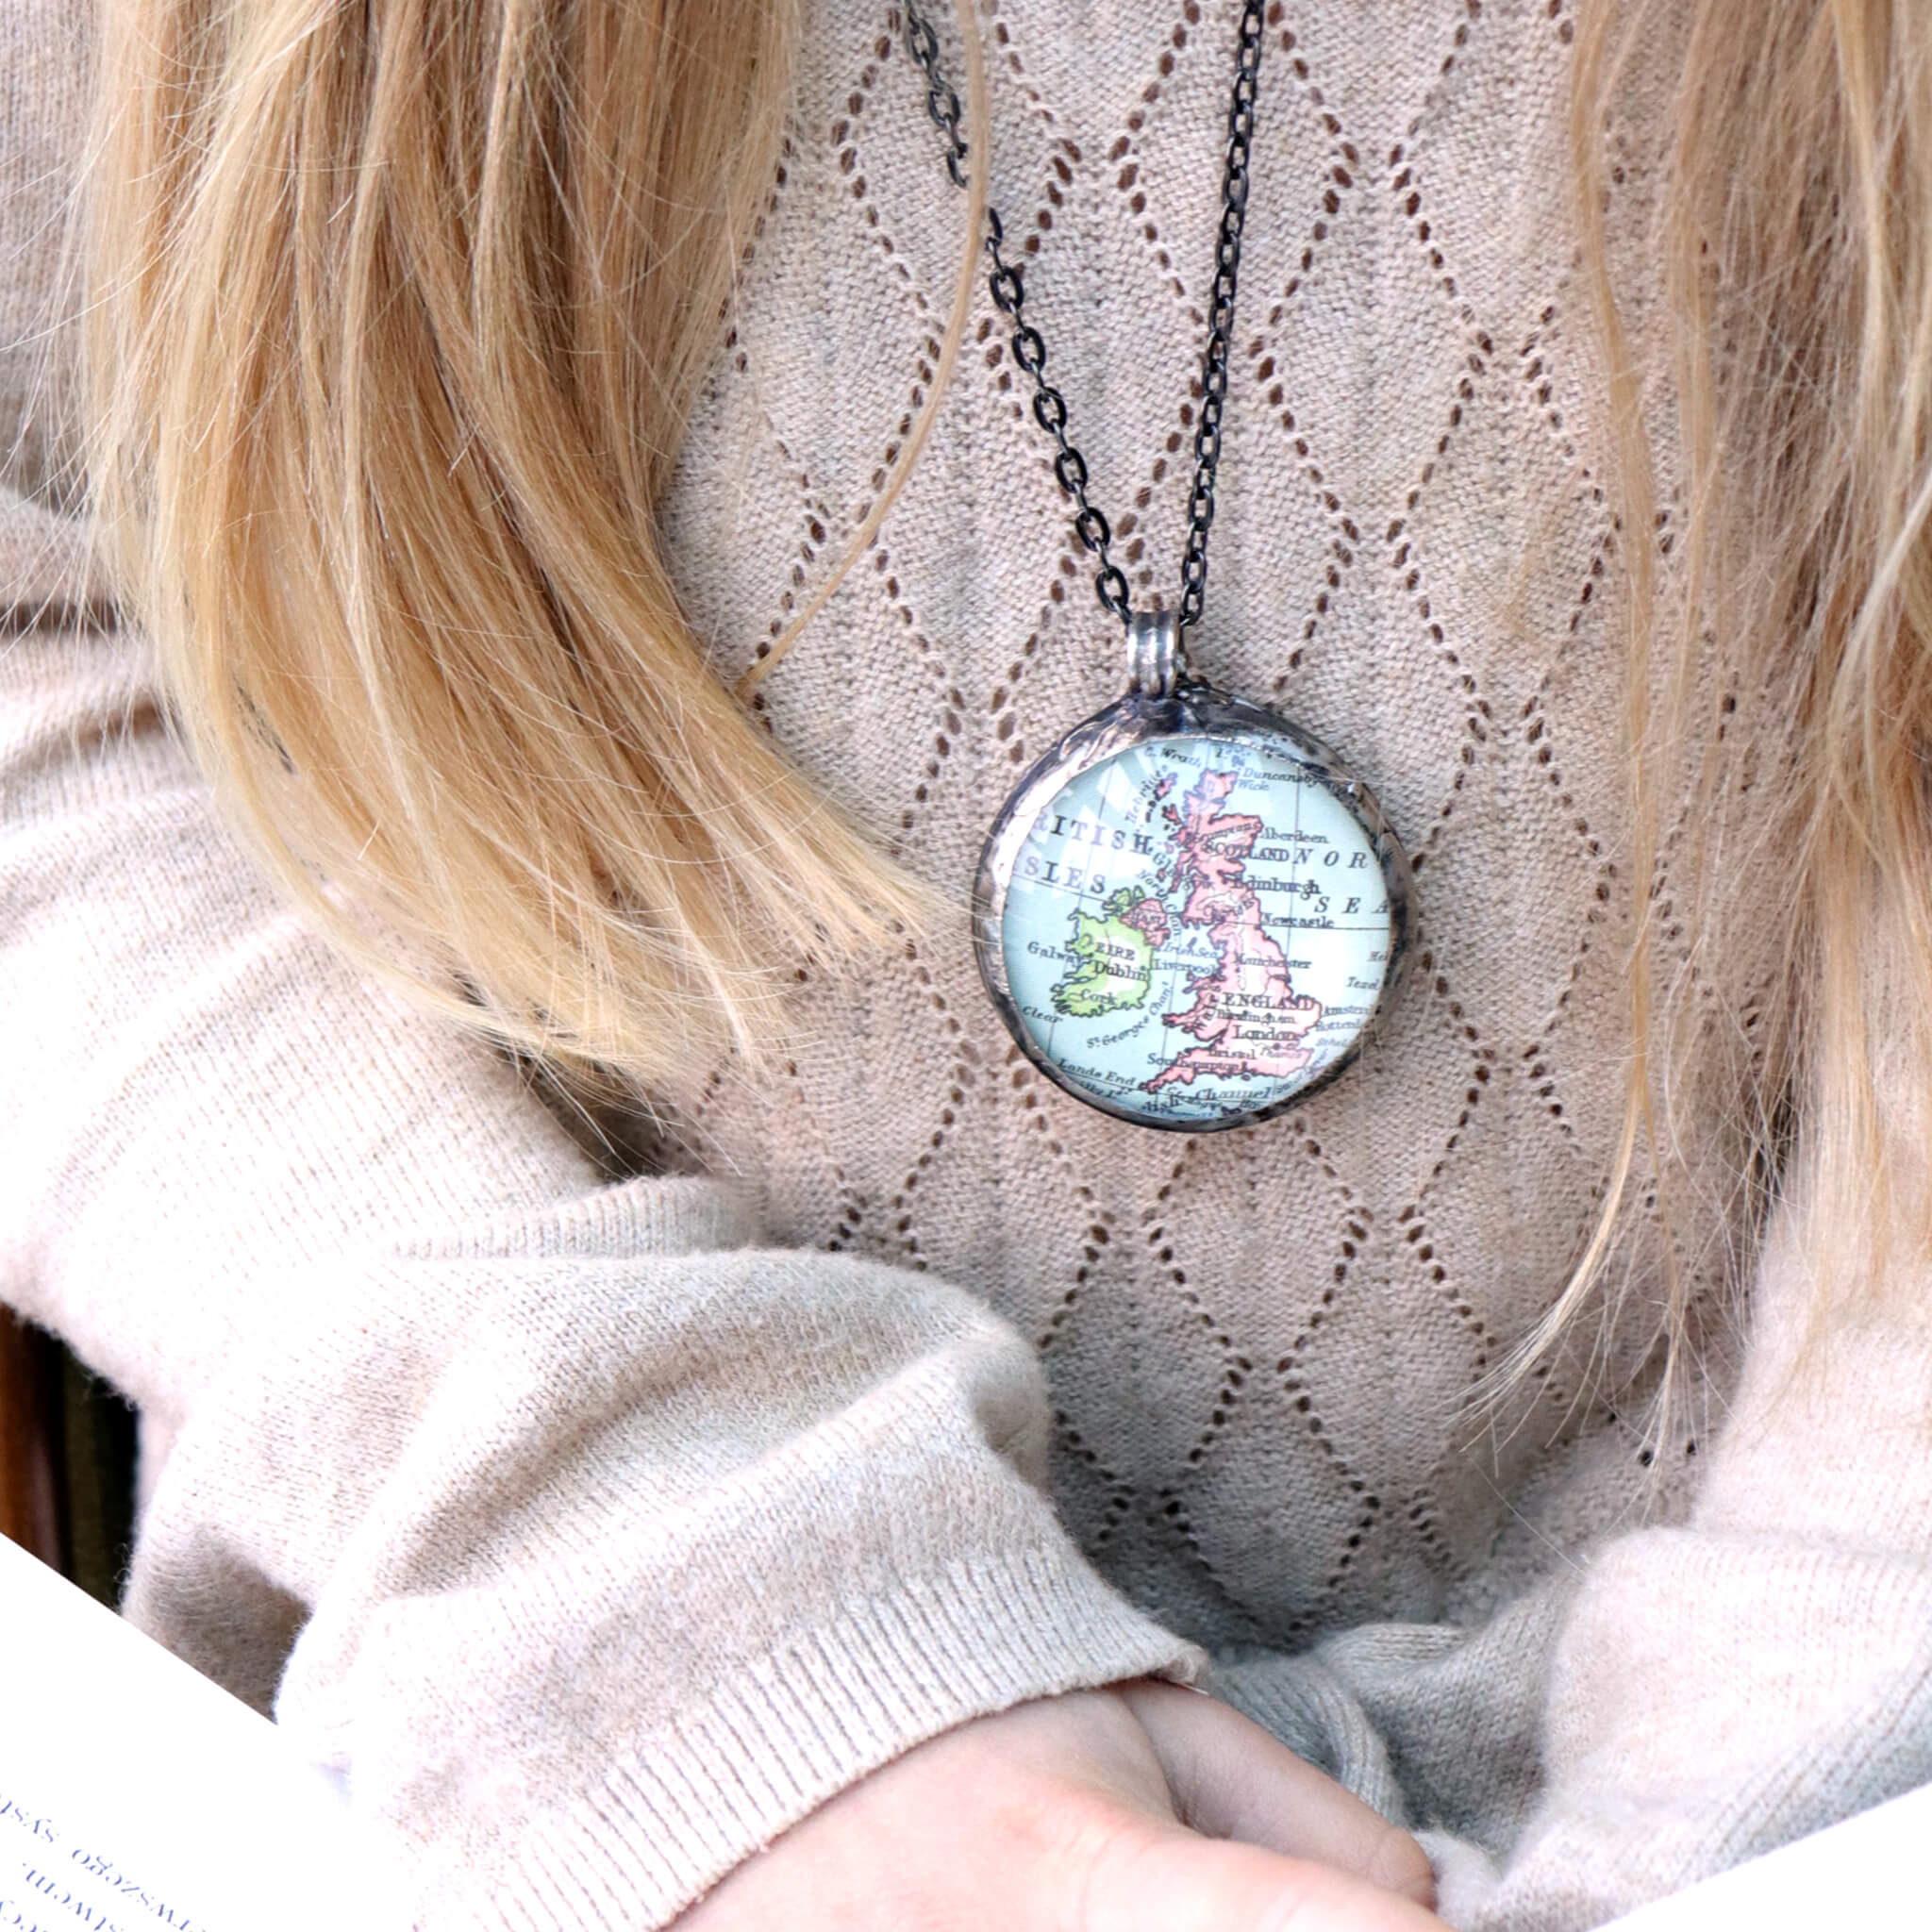 Girl wearing Tiffany style statement necklace featuring map of British Isles